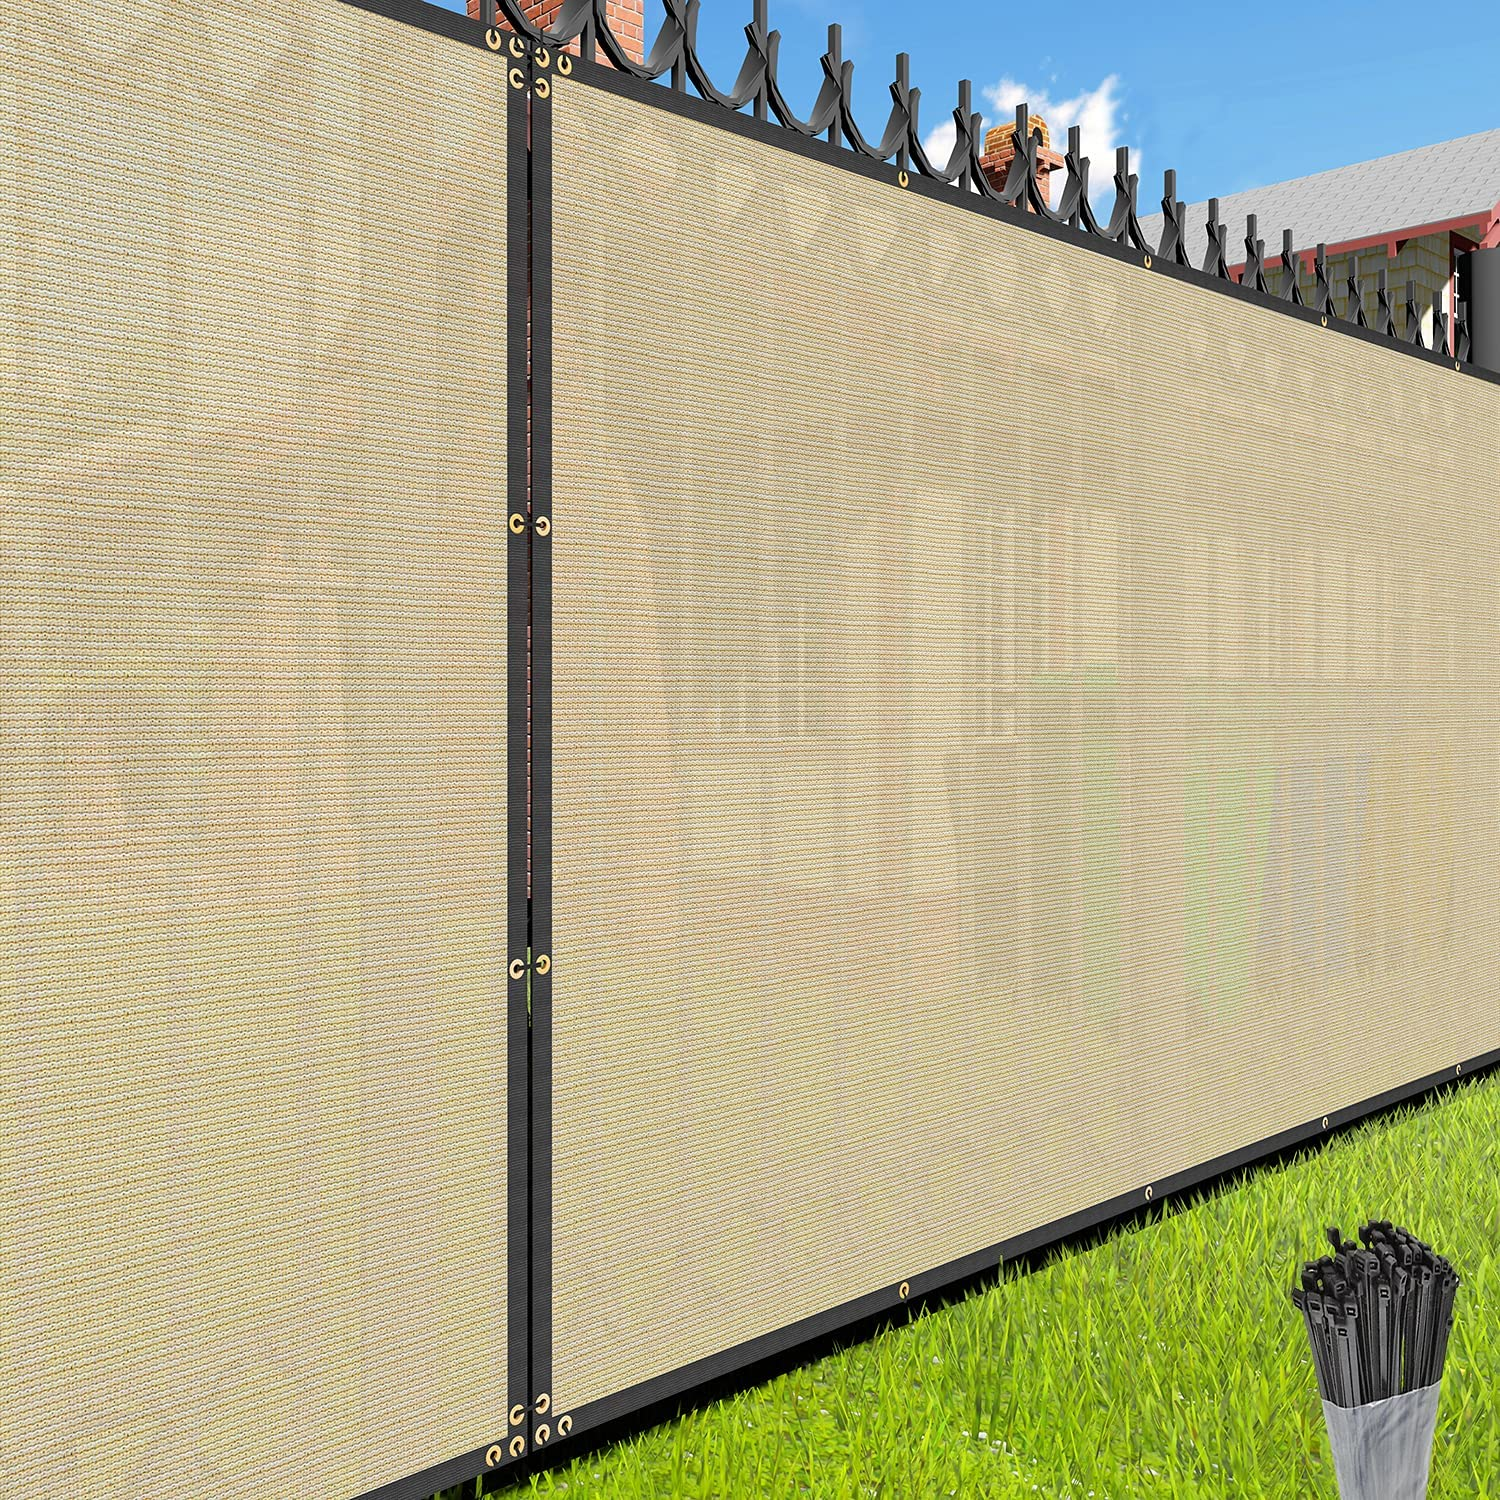 EK Sunrise Fence Privacy Screen Popularity with x 8' Beige Sale special price Zipties Co 28'